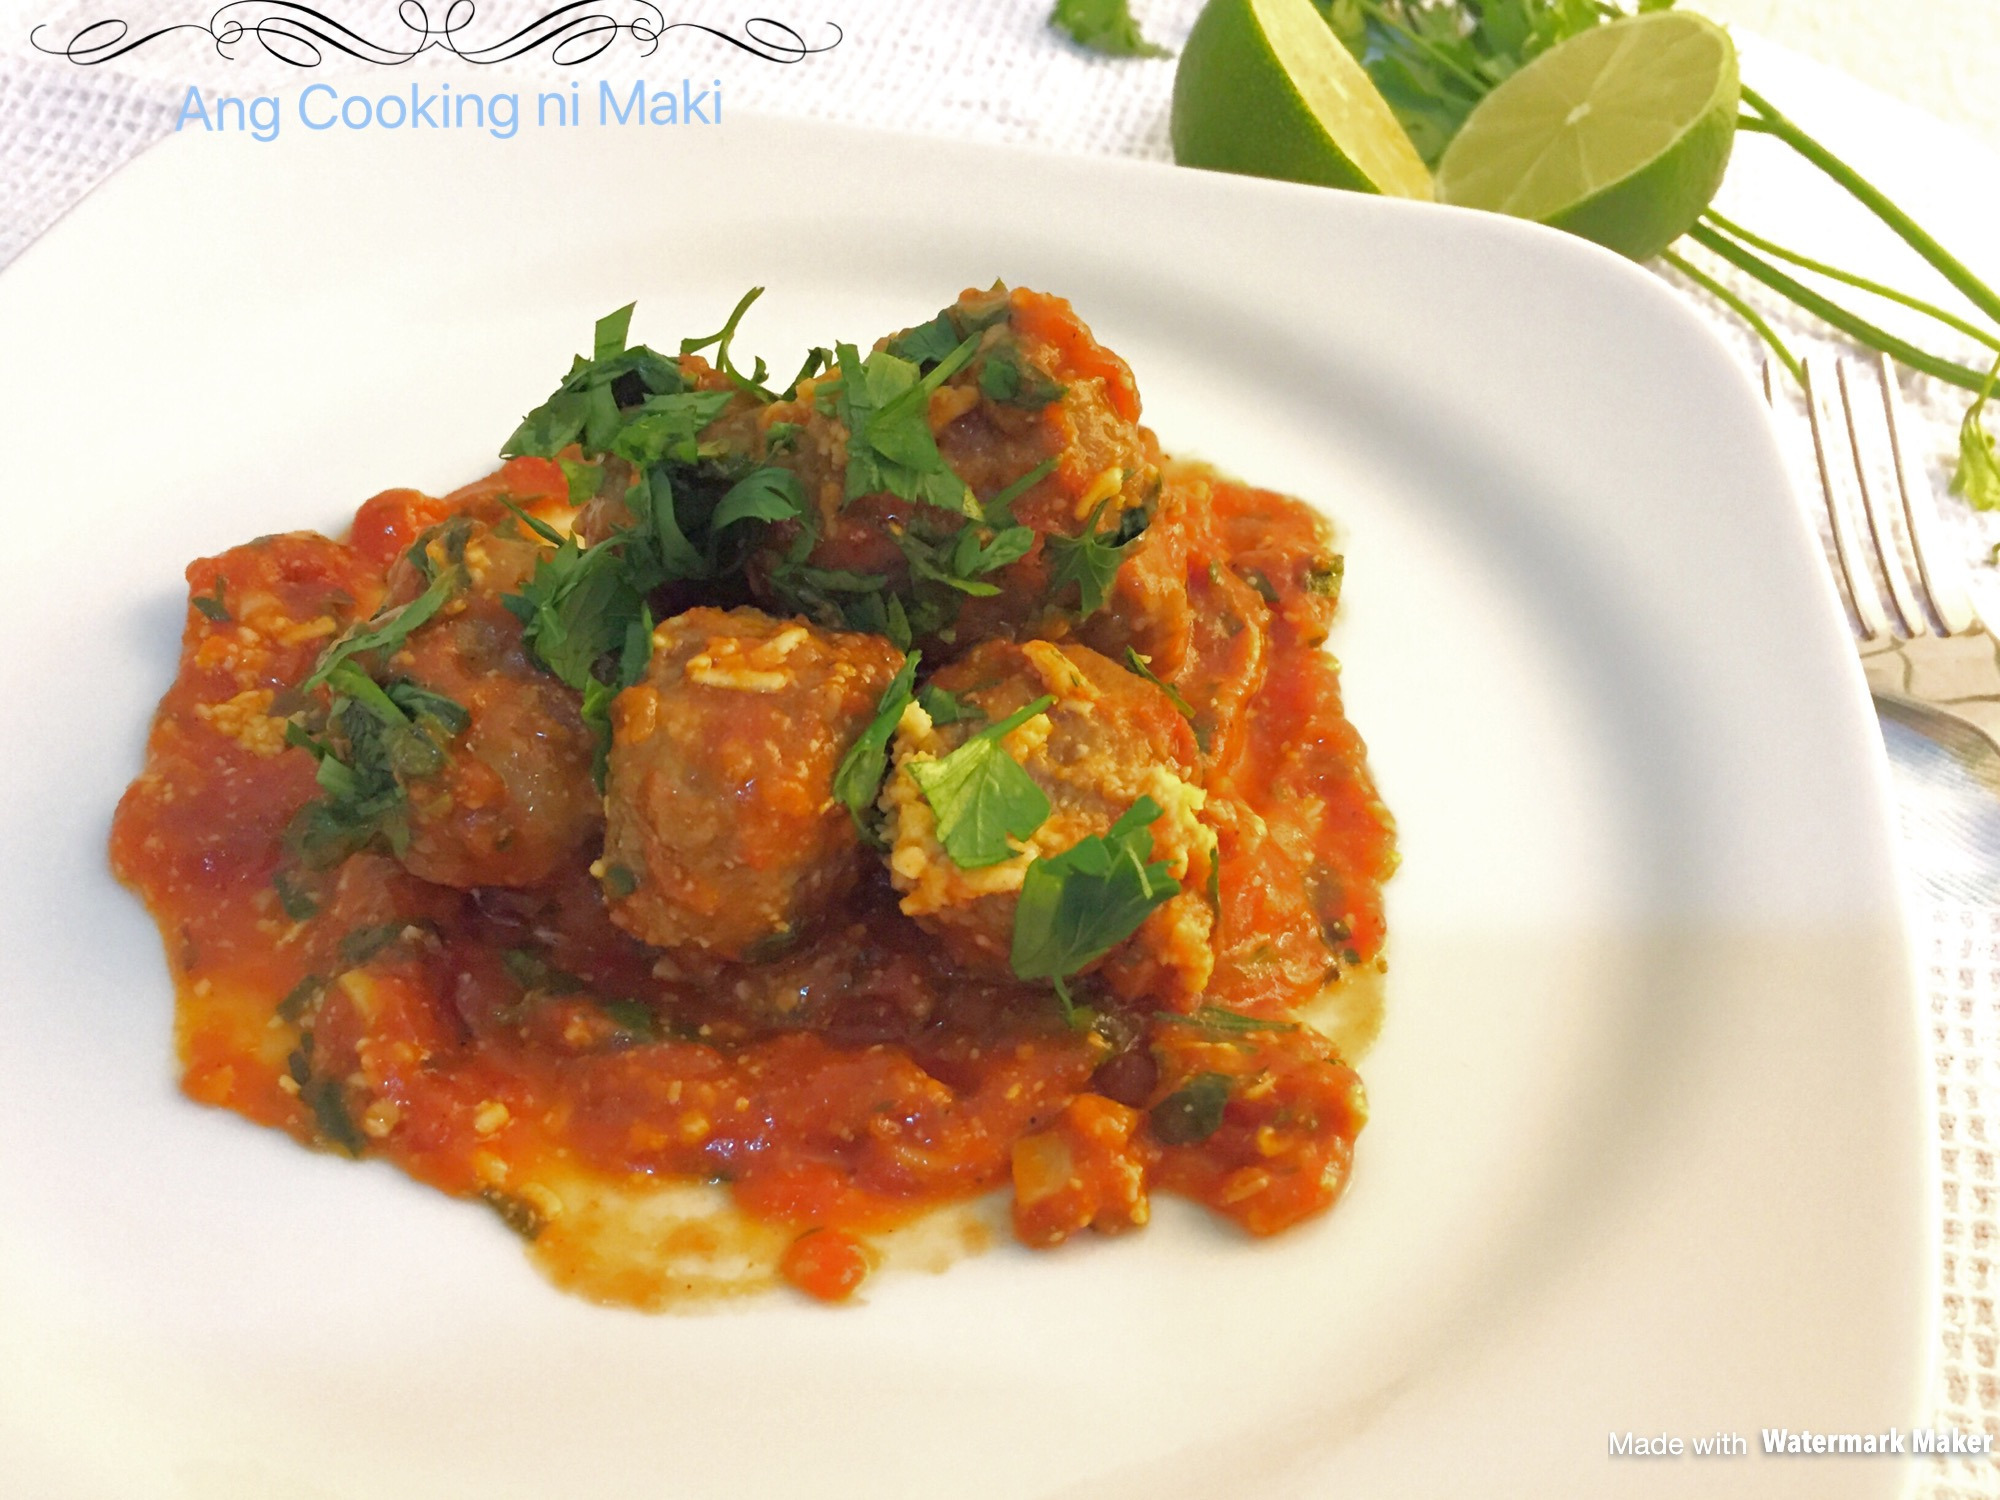 BEEFY MEATBALLS IN SAUCY TOMATO SAUCE